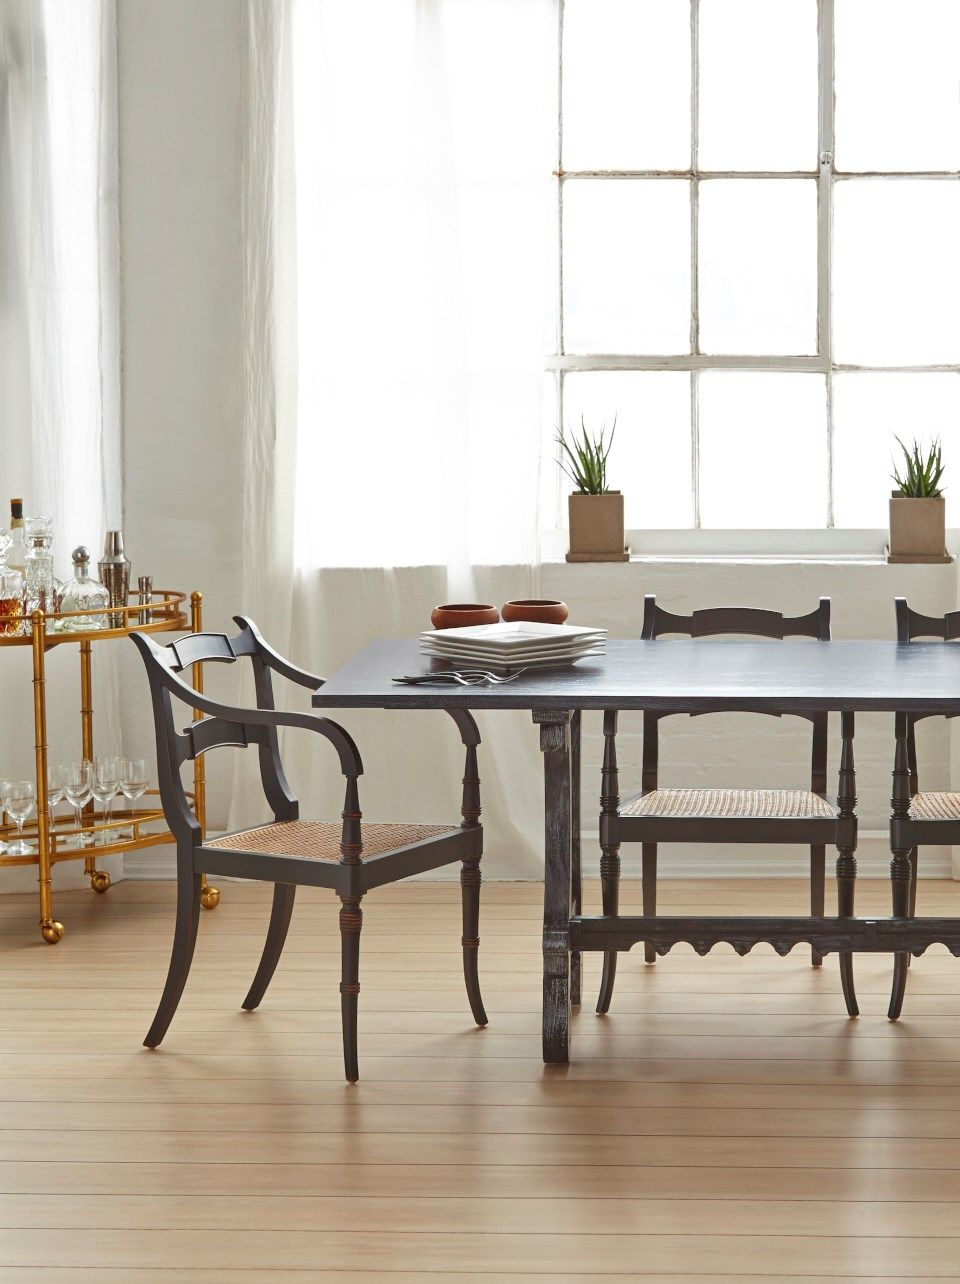 Malta Dining Table Black